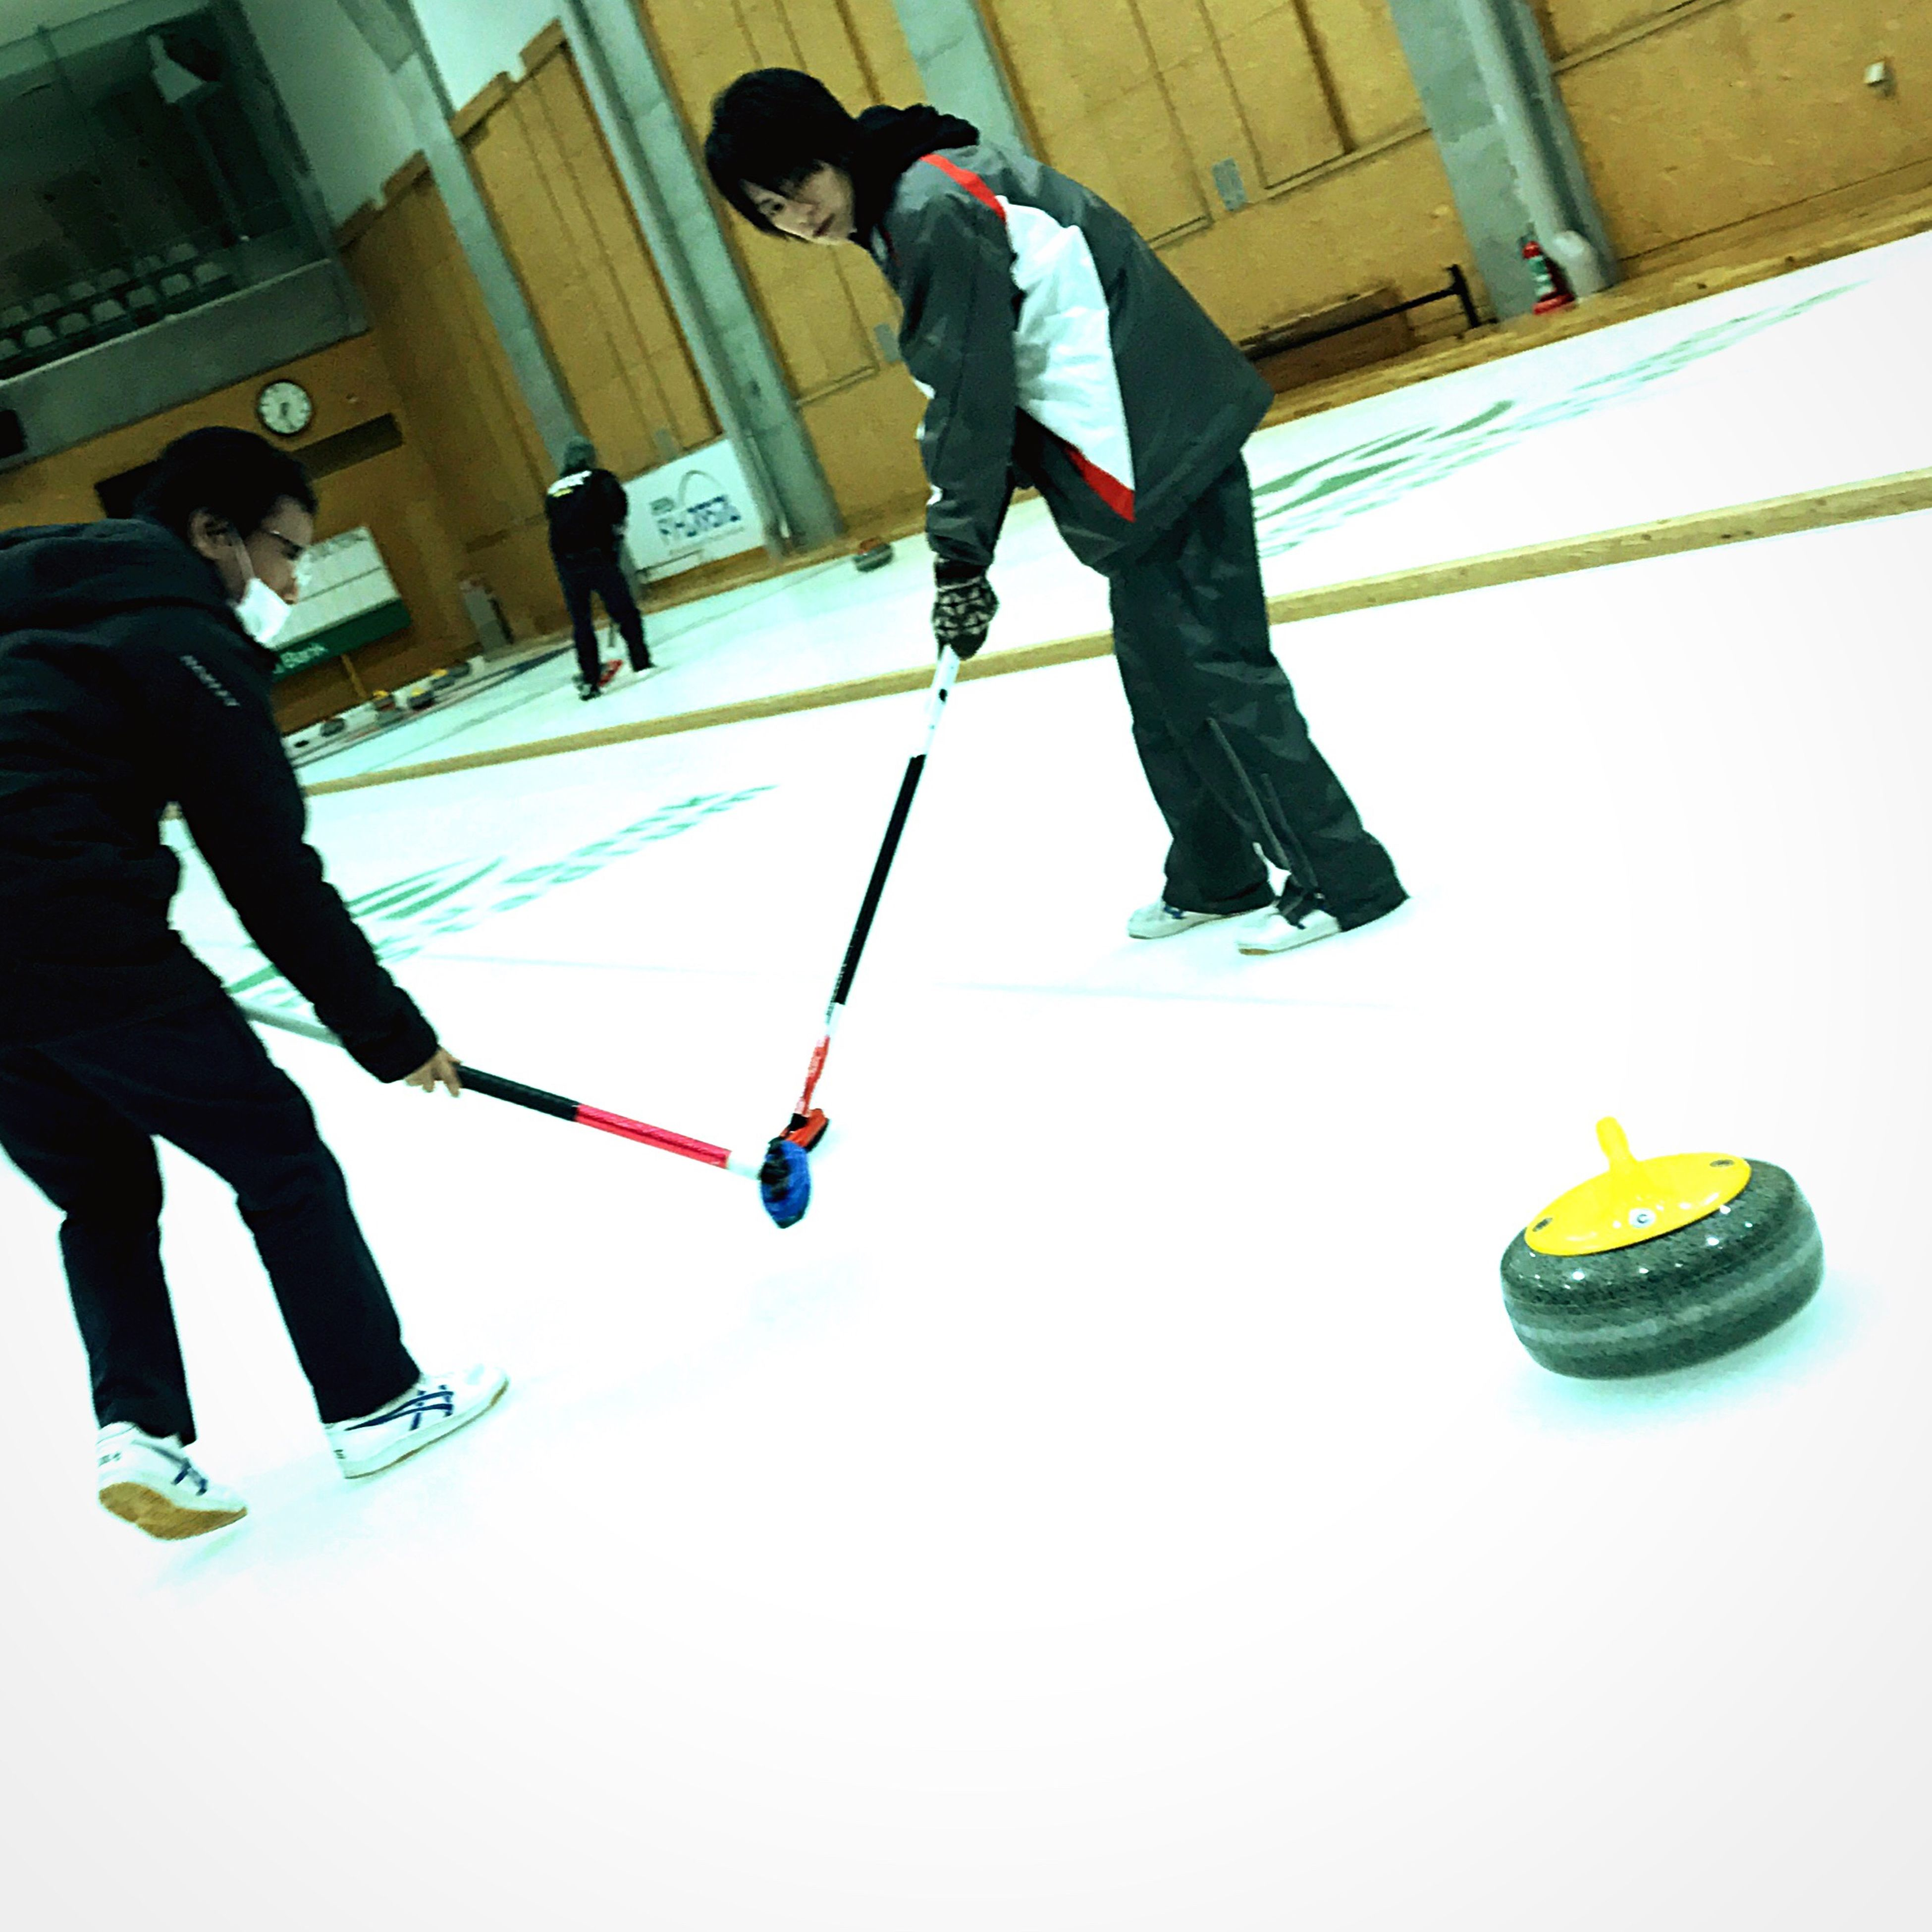 sport, men, full length, leisure activity, adults only, lifestyles, adult, ice rink, people, women, competitive sport, indoors, real people, day, headwear, competition, warm clothing, only men, young adult, professional sport, taking a shot - sport, ice hockey, sportsman, ice skate